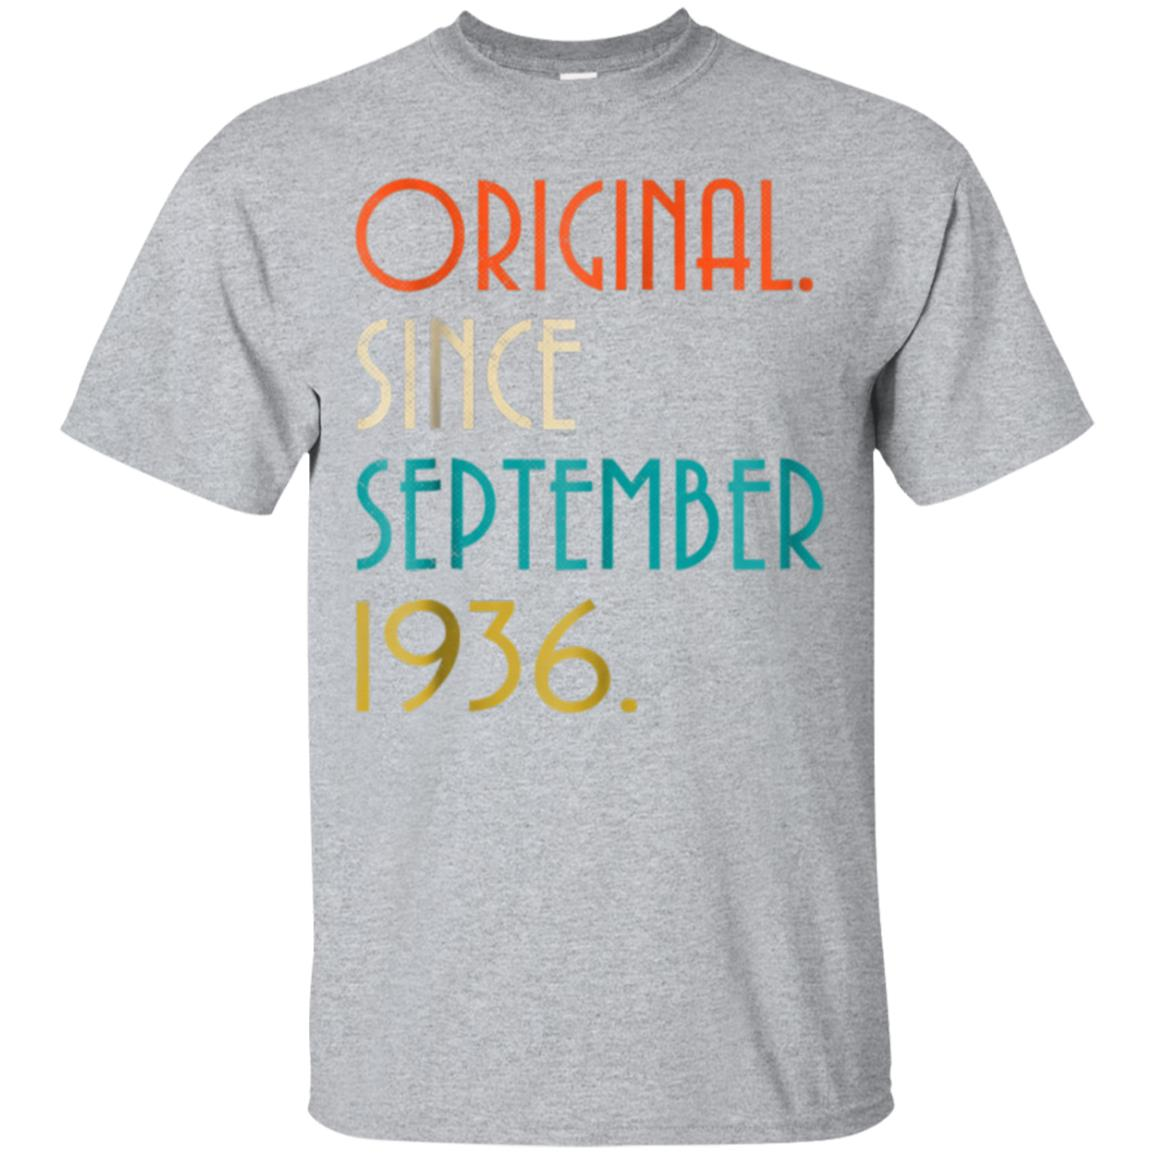 82nd Birthday Vintage Original since September 1936 T-Shirt 99promocode